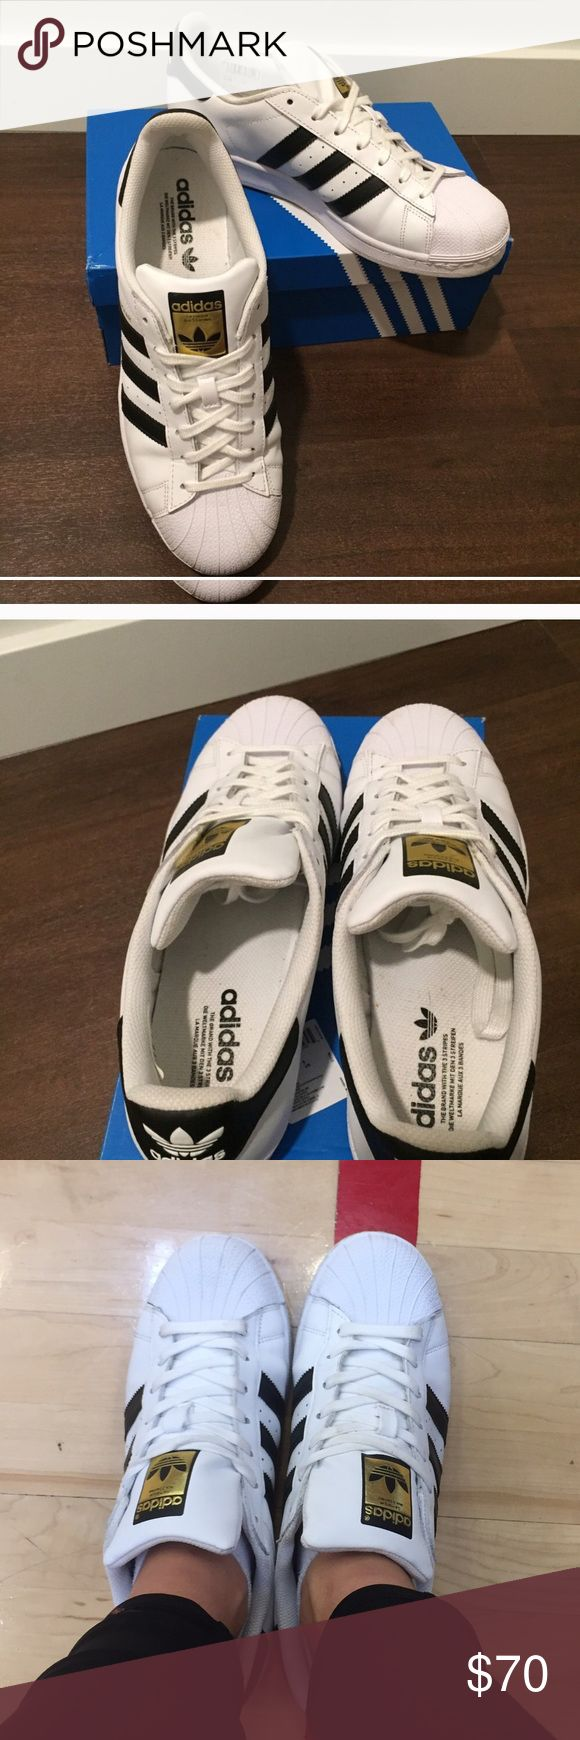 """Adidas """"shell toe"""" Superstars MENS size 8 1/2 (women's size 10) adidas superstar shell toes. Great, nearly new condition. Worn 2 times. Adidas Shoes Sneakers"""